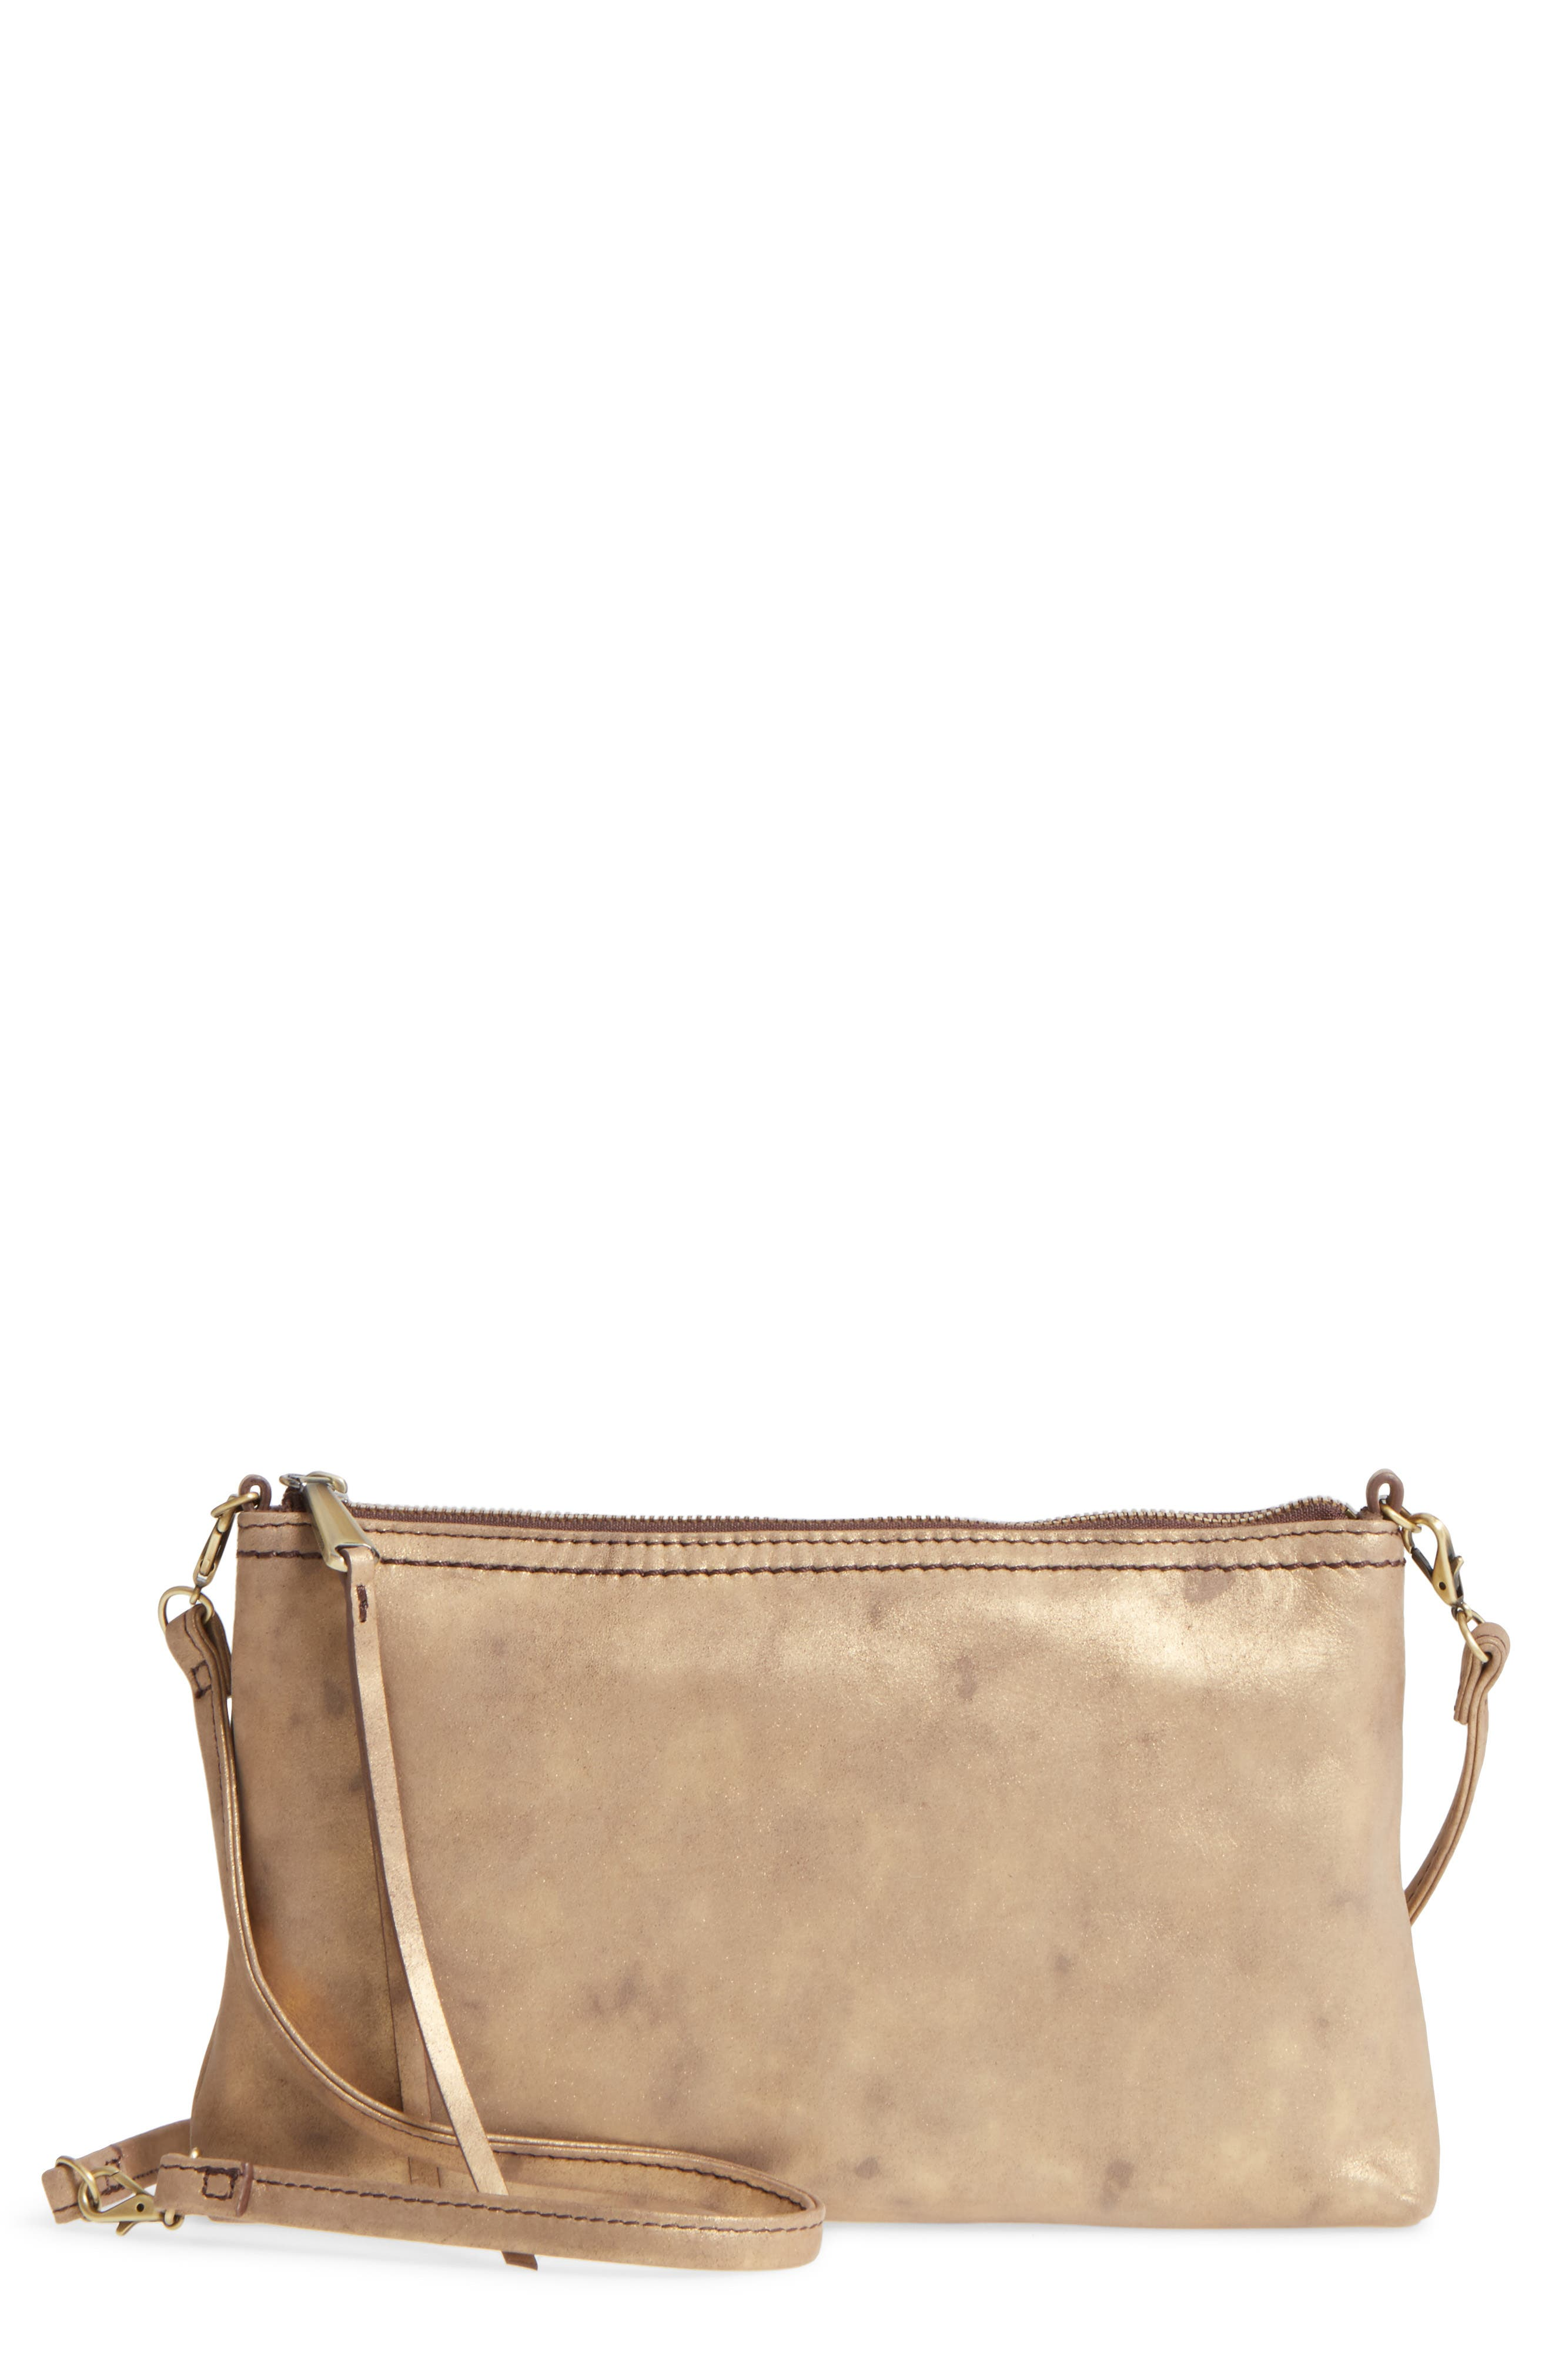 'Darcy' Leather Crossbody Bag,                             Main thumbnail 3, color,